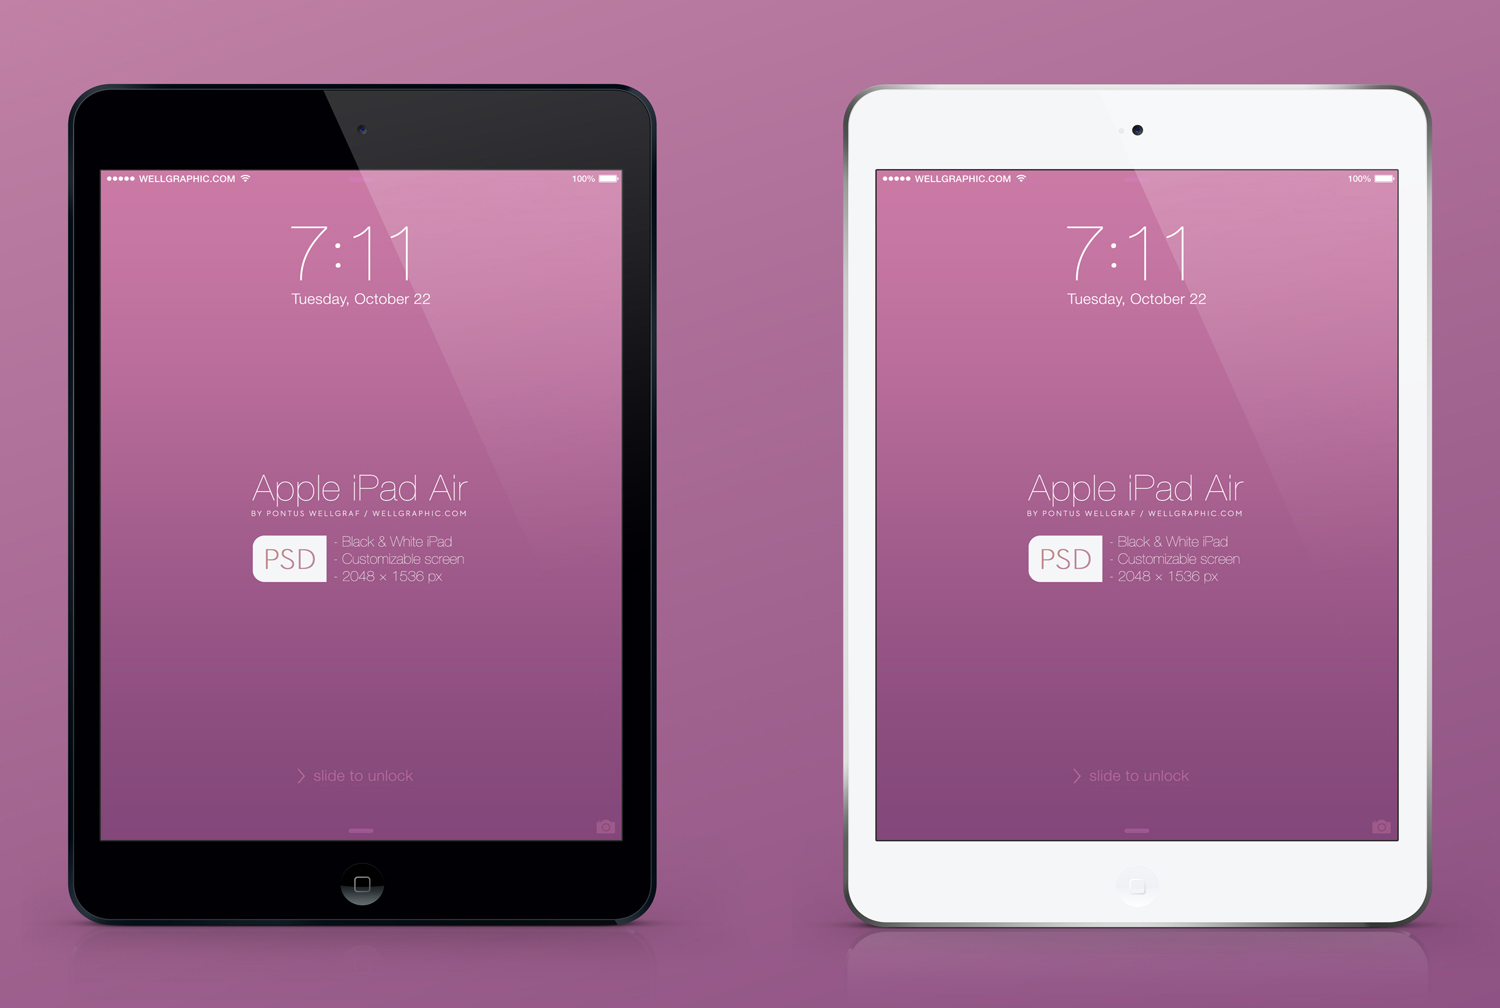 Apple-iPad-Air-Mockup-PSD-By-wellgraphic.com-small1